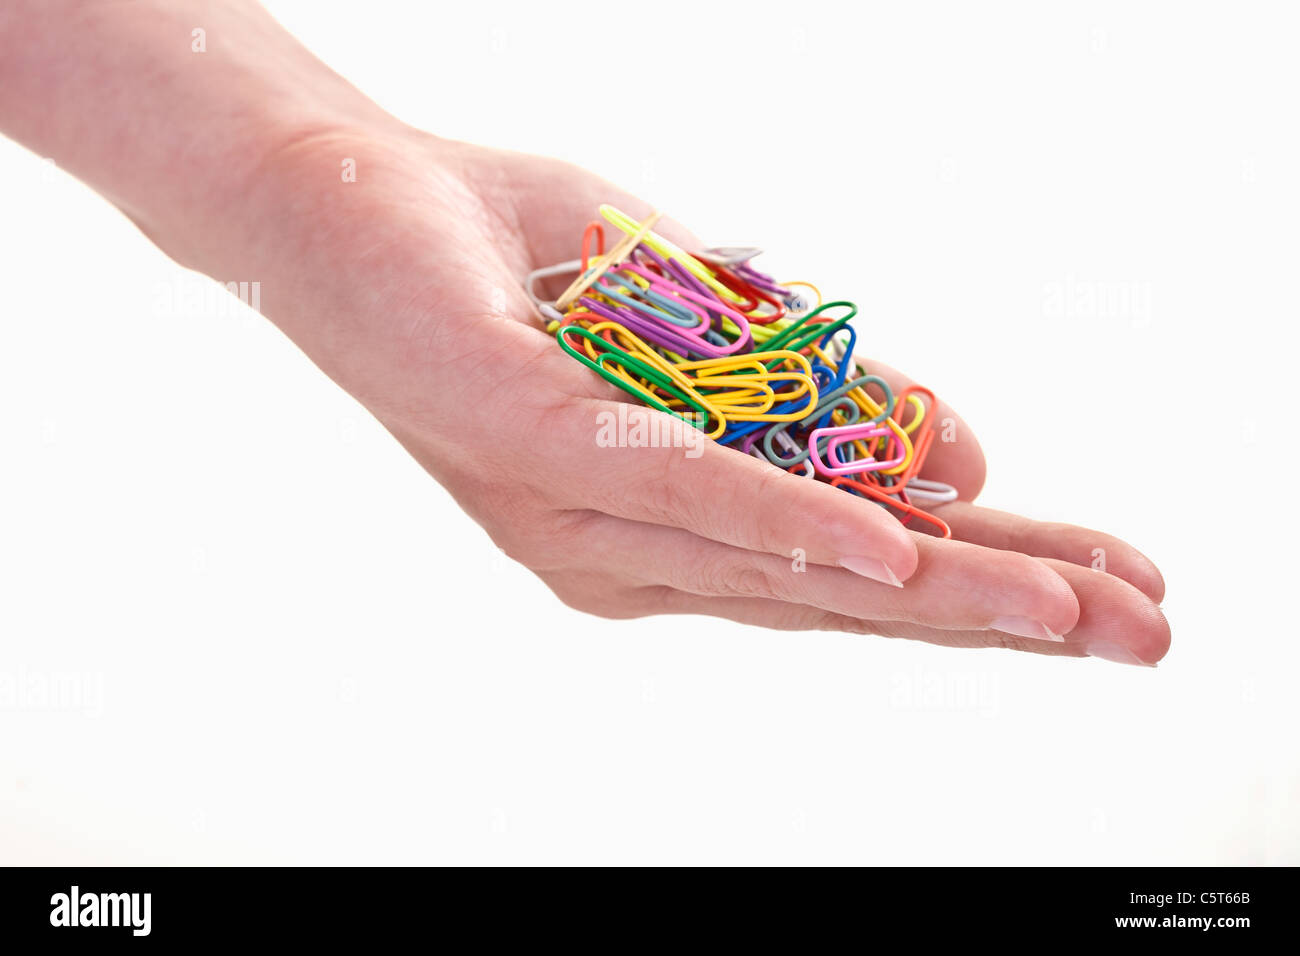 Close up of woman's hand holding paper clips against white background - Stock Image